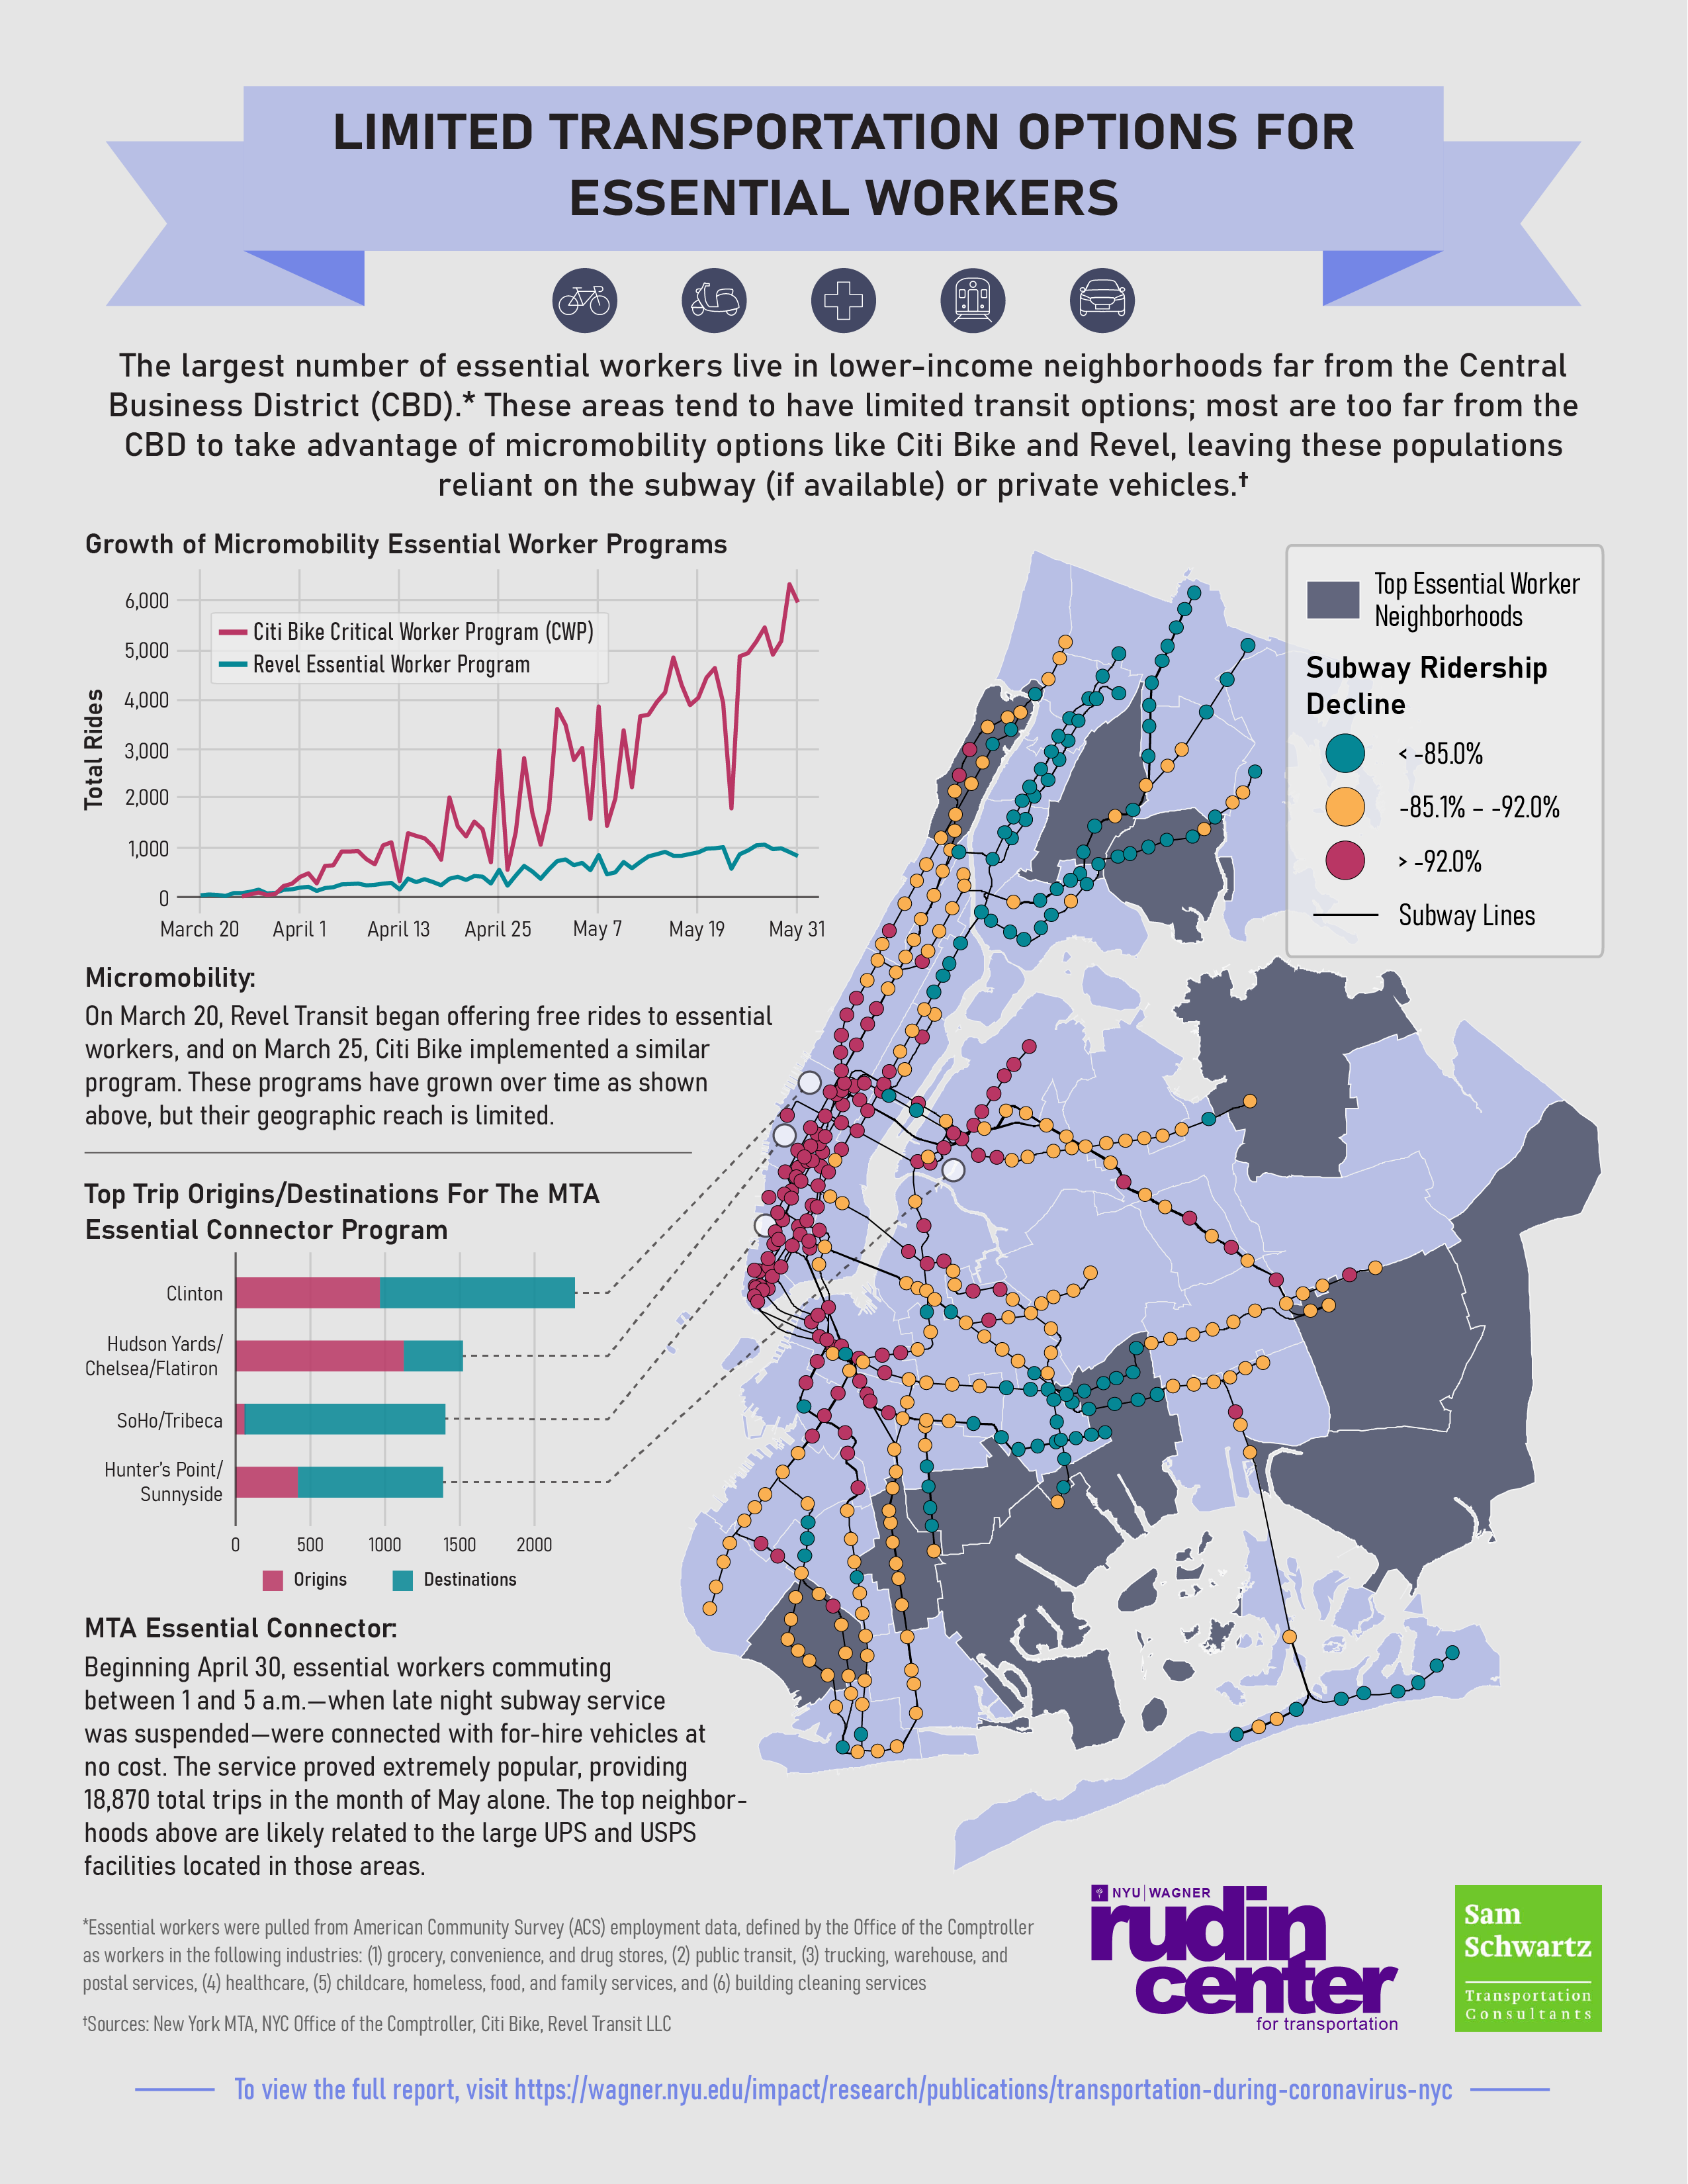 Fact Sheet showing transit options for essential workers during the COVID pandemic in NYC